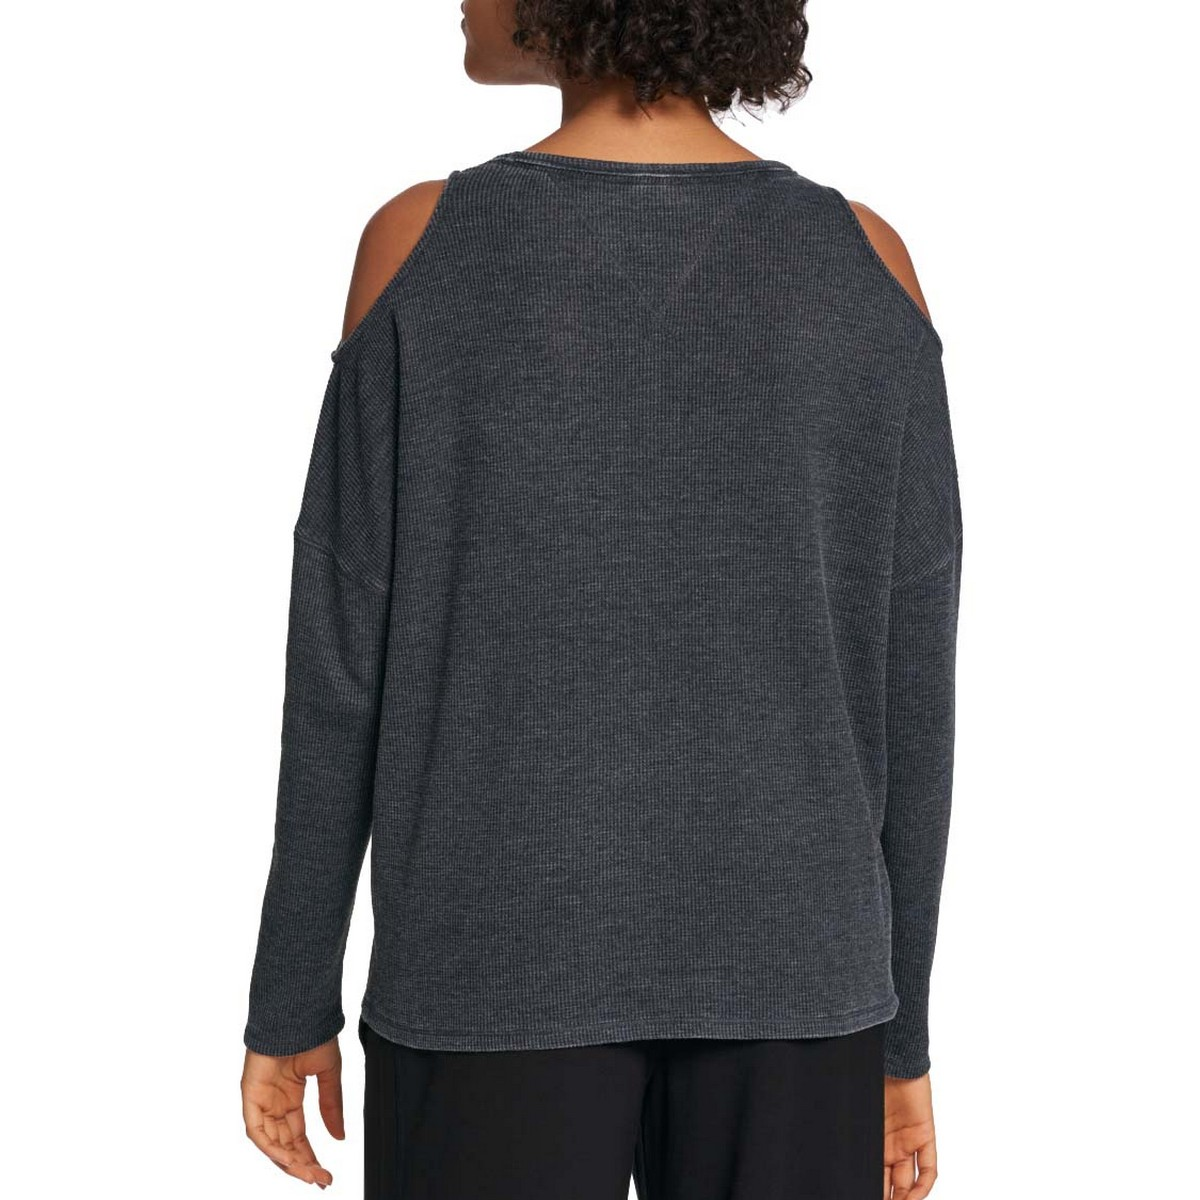 TOMMY-HILFIGER-NEW-Women-039-s-Cold-Shoulder-Waffle-Knit-Casual-Shirt-Top-TEDO thumbnail 4